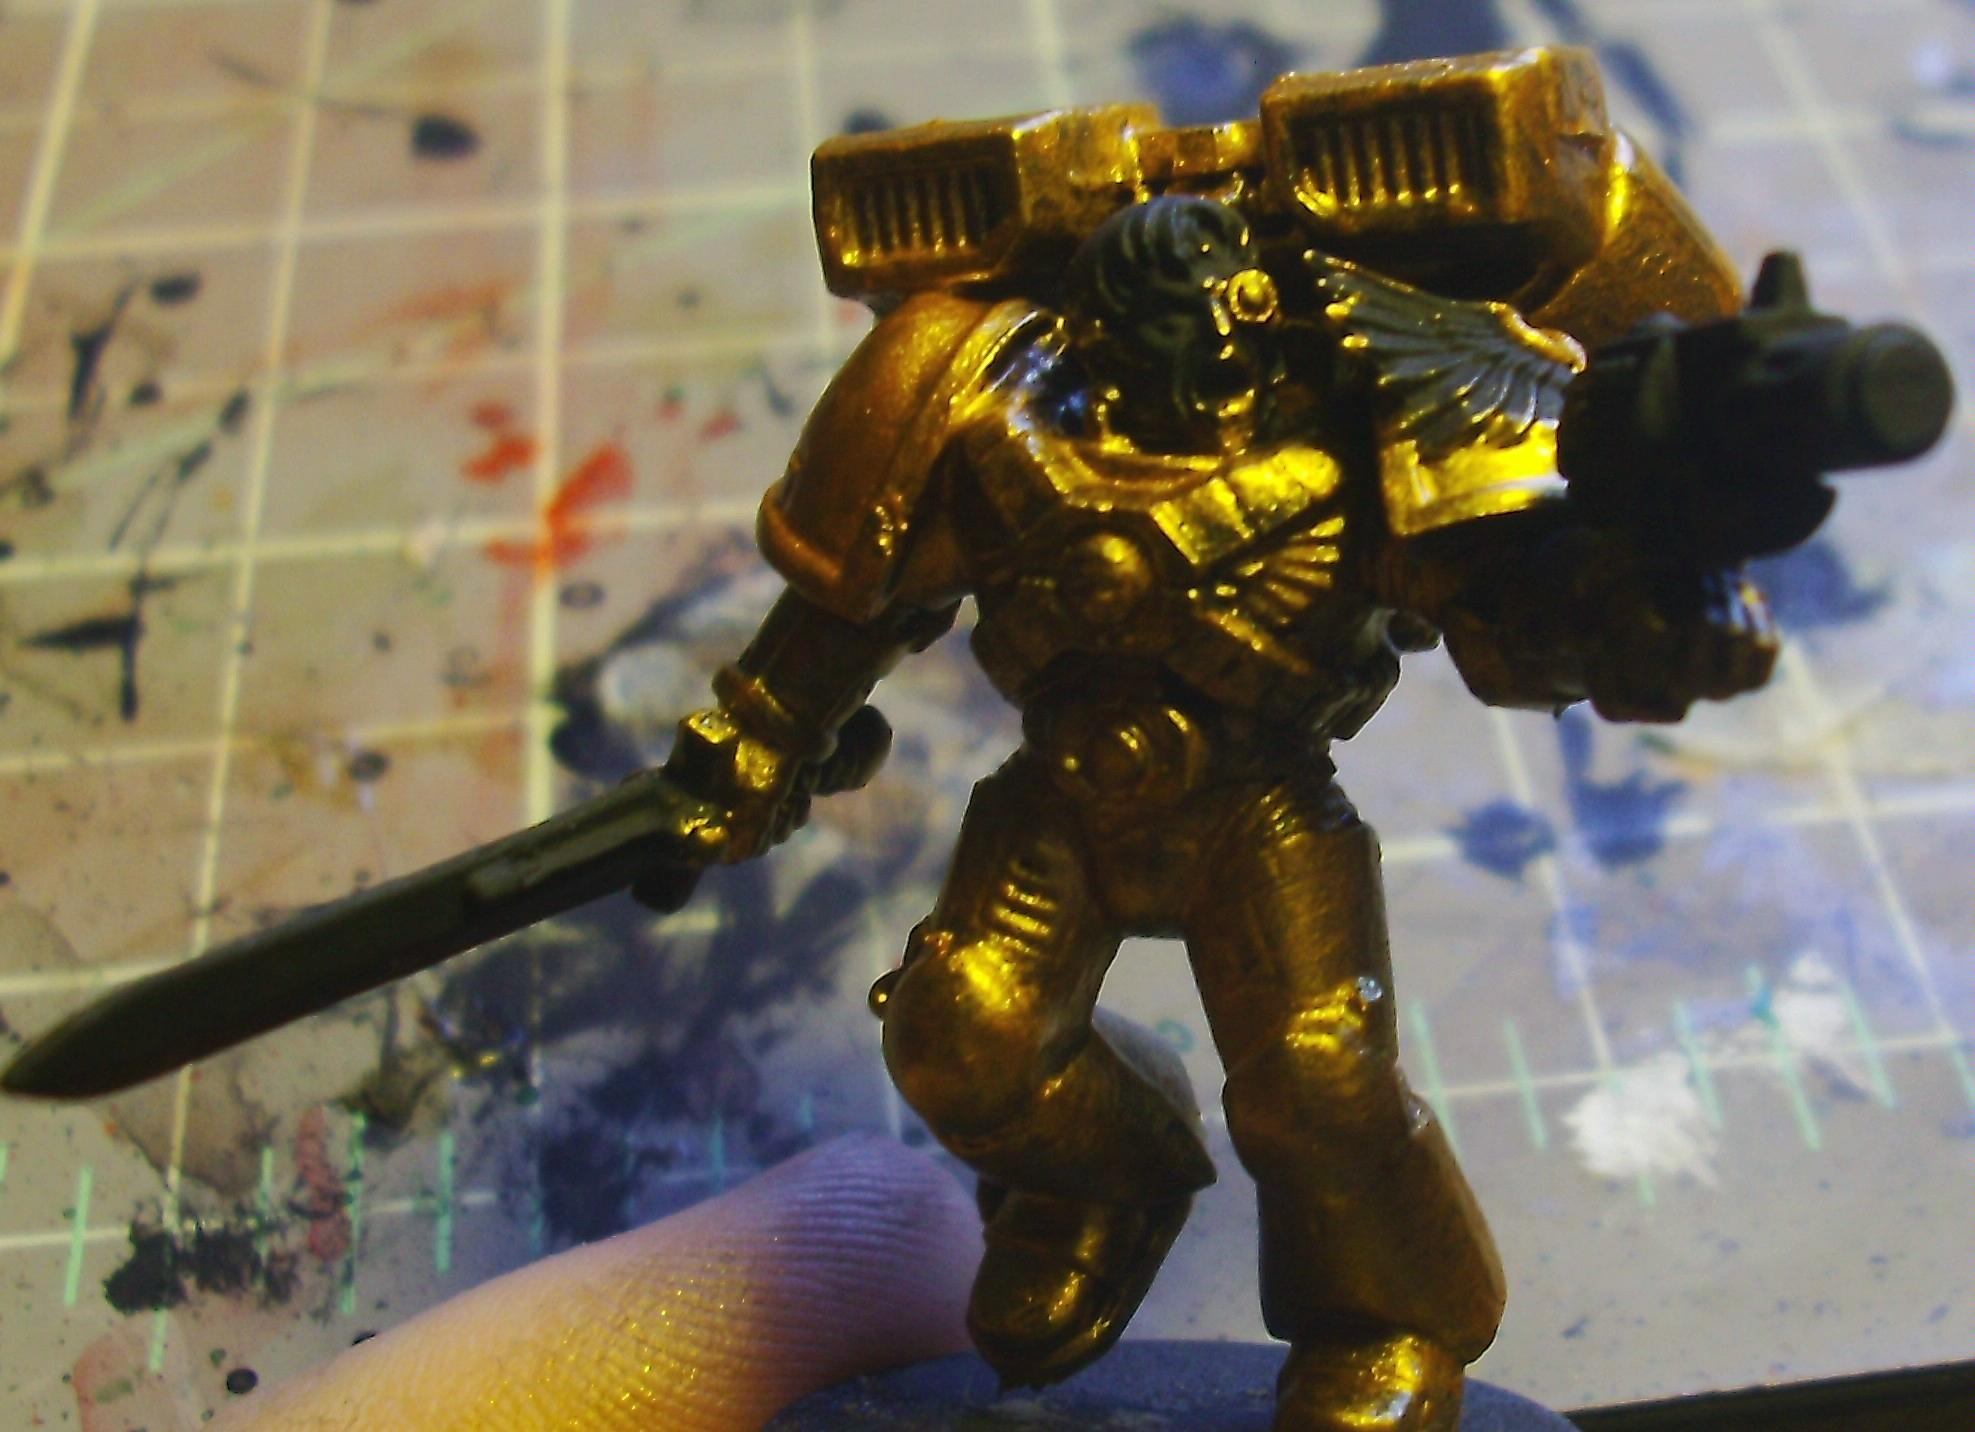 Couple layers of gold, WIP